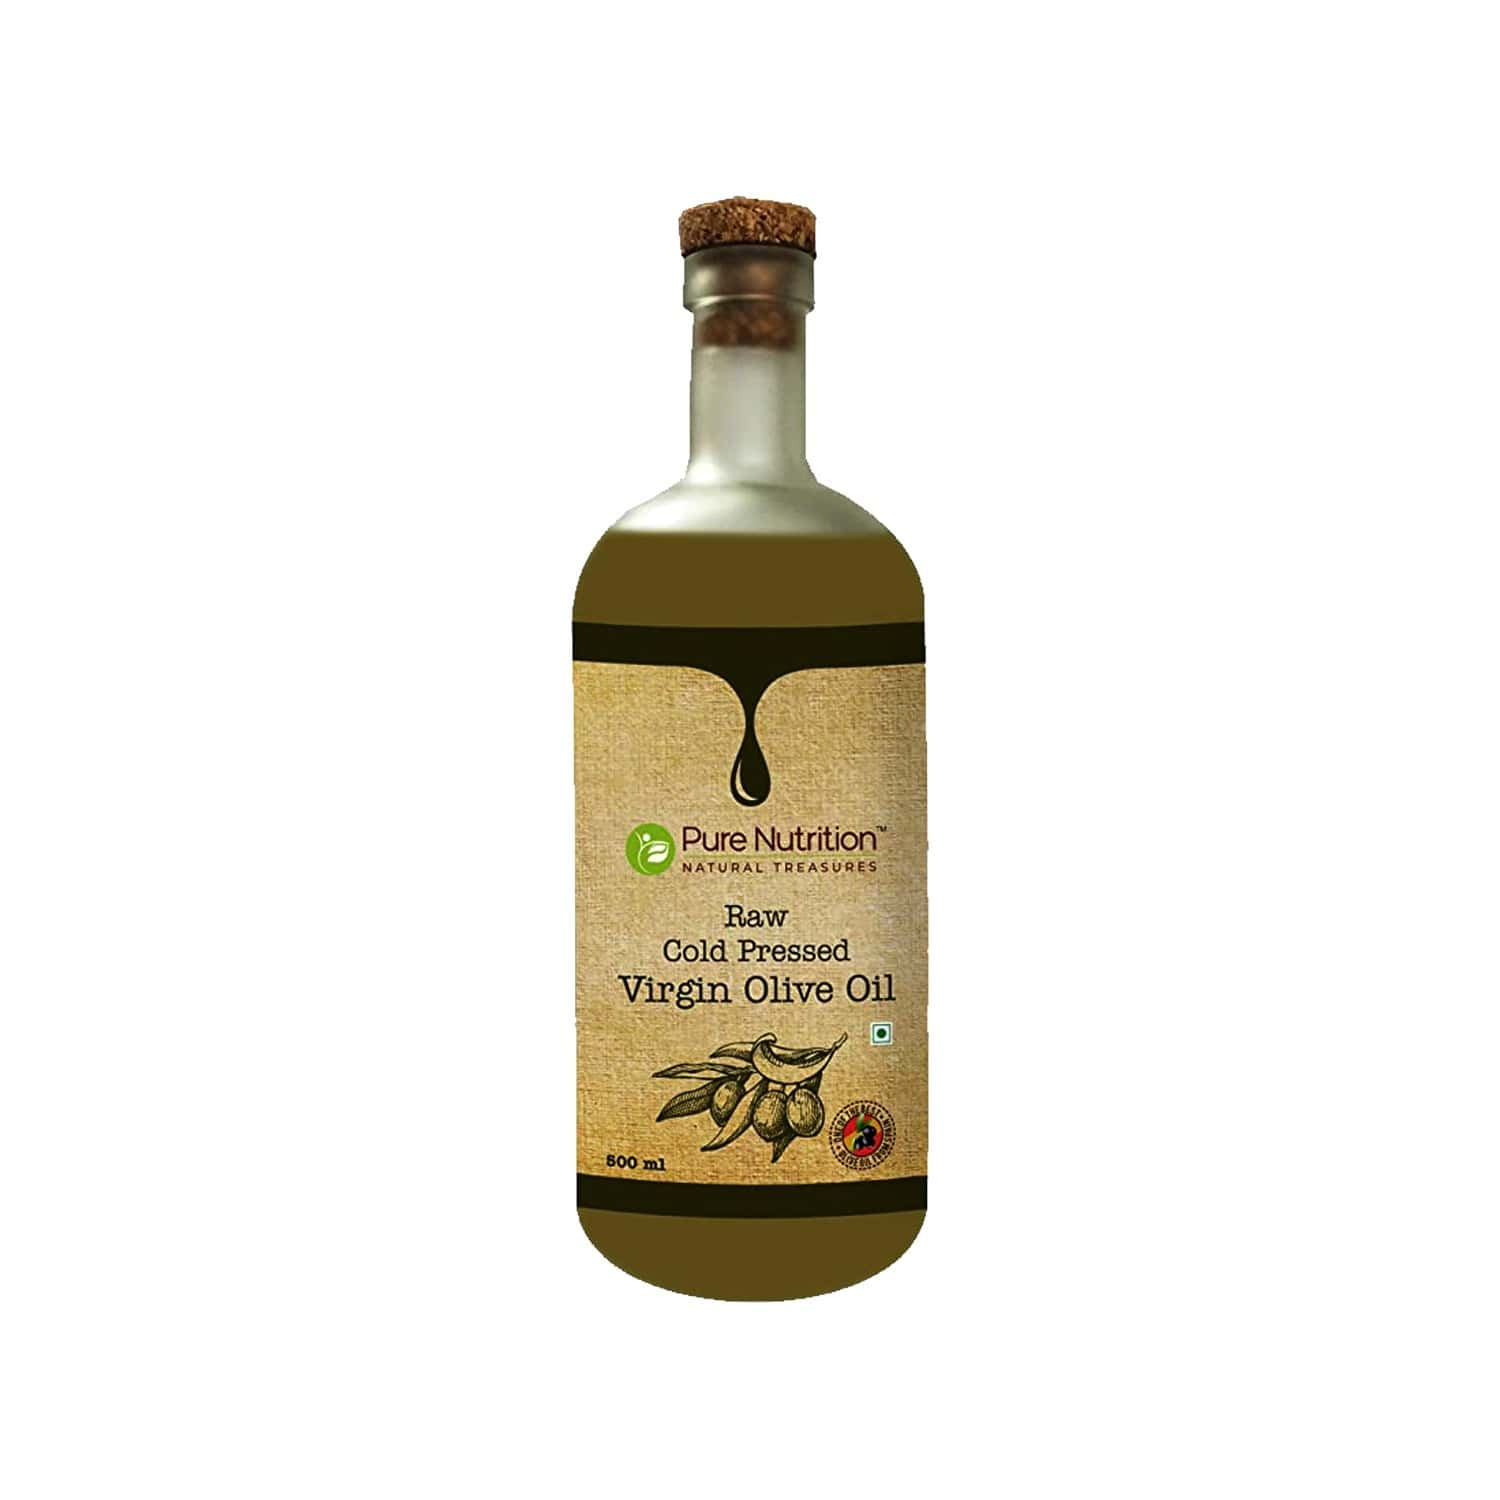 Pure Nutrition Extra Virgin Olive Oil, Raw Cold Pressed, Edible Premium Grade, Ideal For Dressing & Garnishing - 500ml Glass Bottle